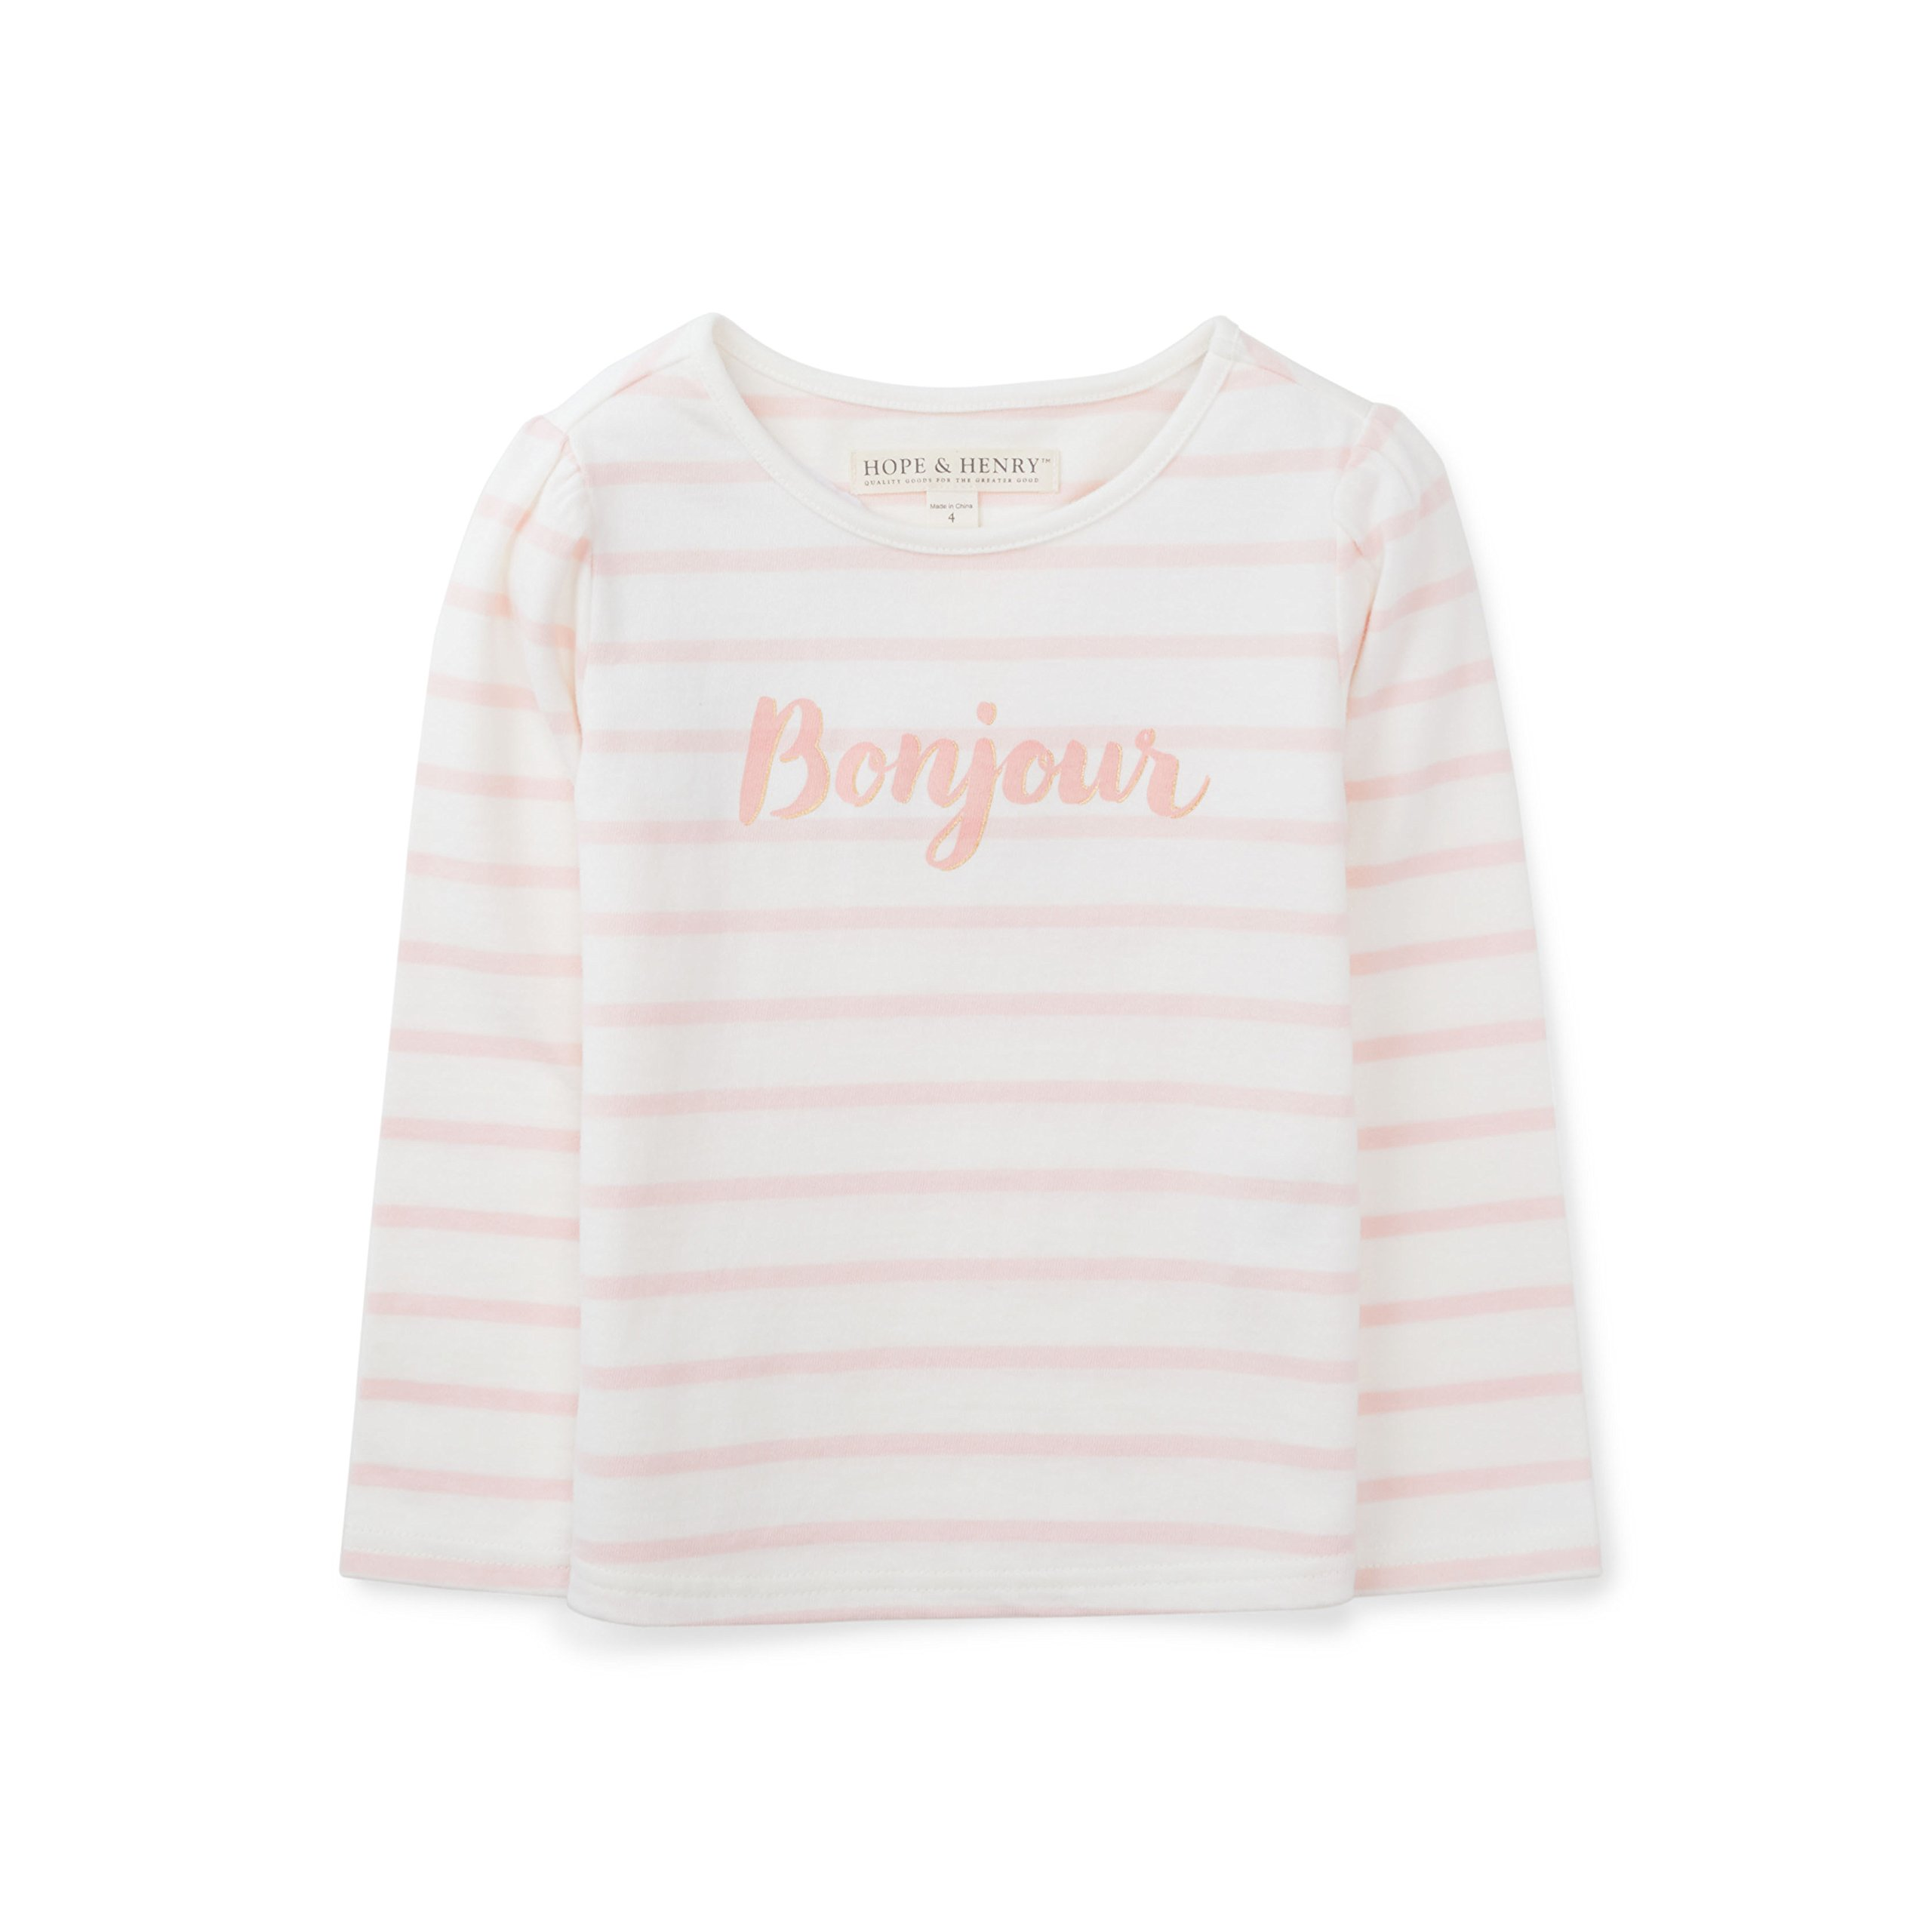 Hope & Henry Girls' Bonjour Graphic Tee Made with Organic Cotton Size 5